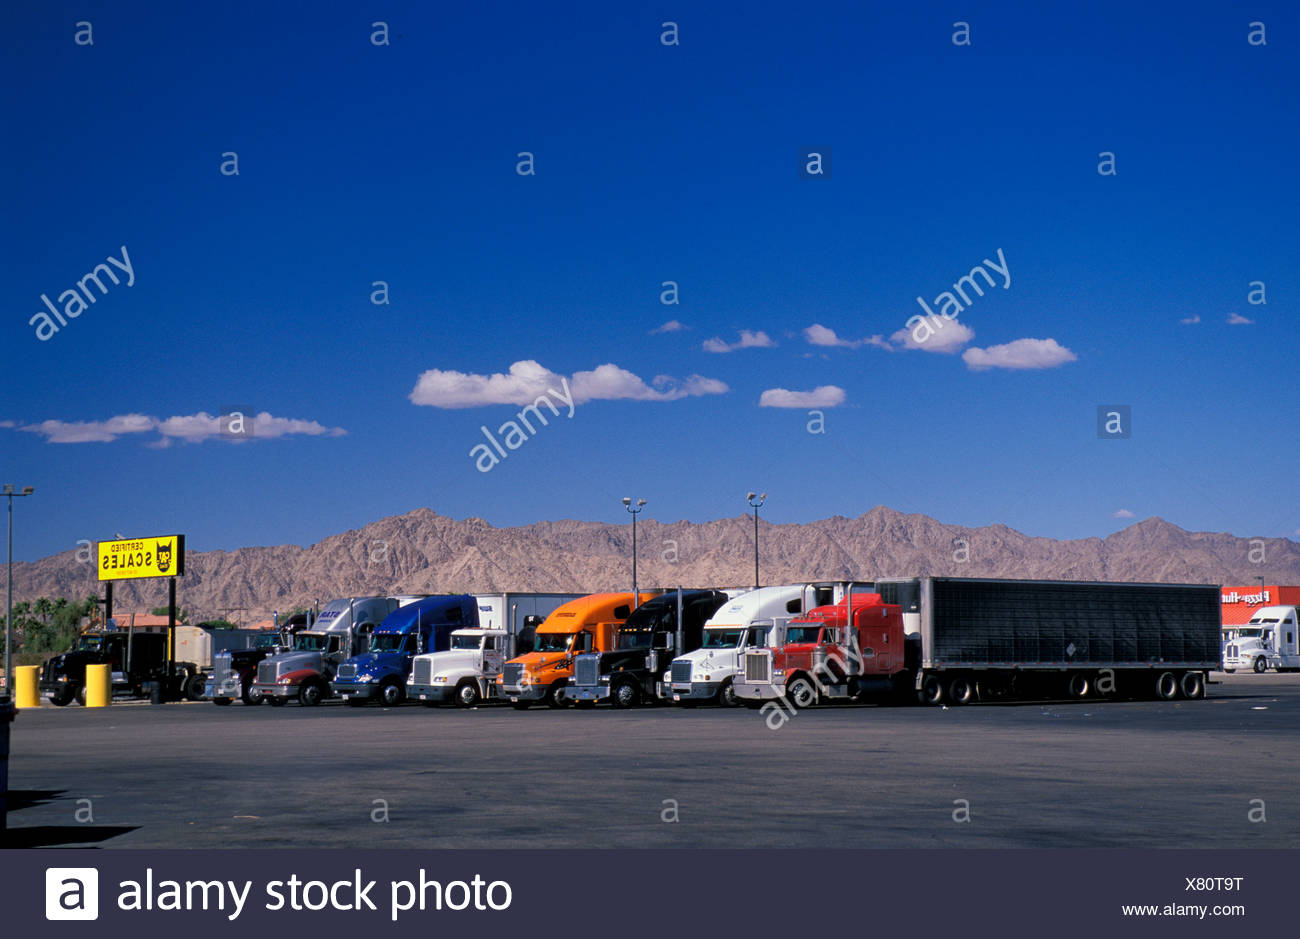 Truck Truck stop resting place parking lot motorway service area